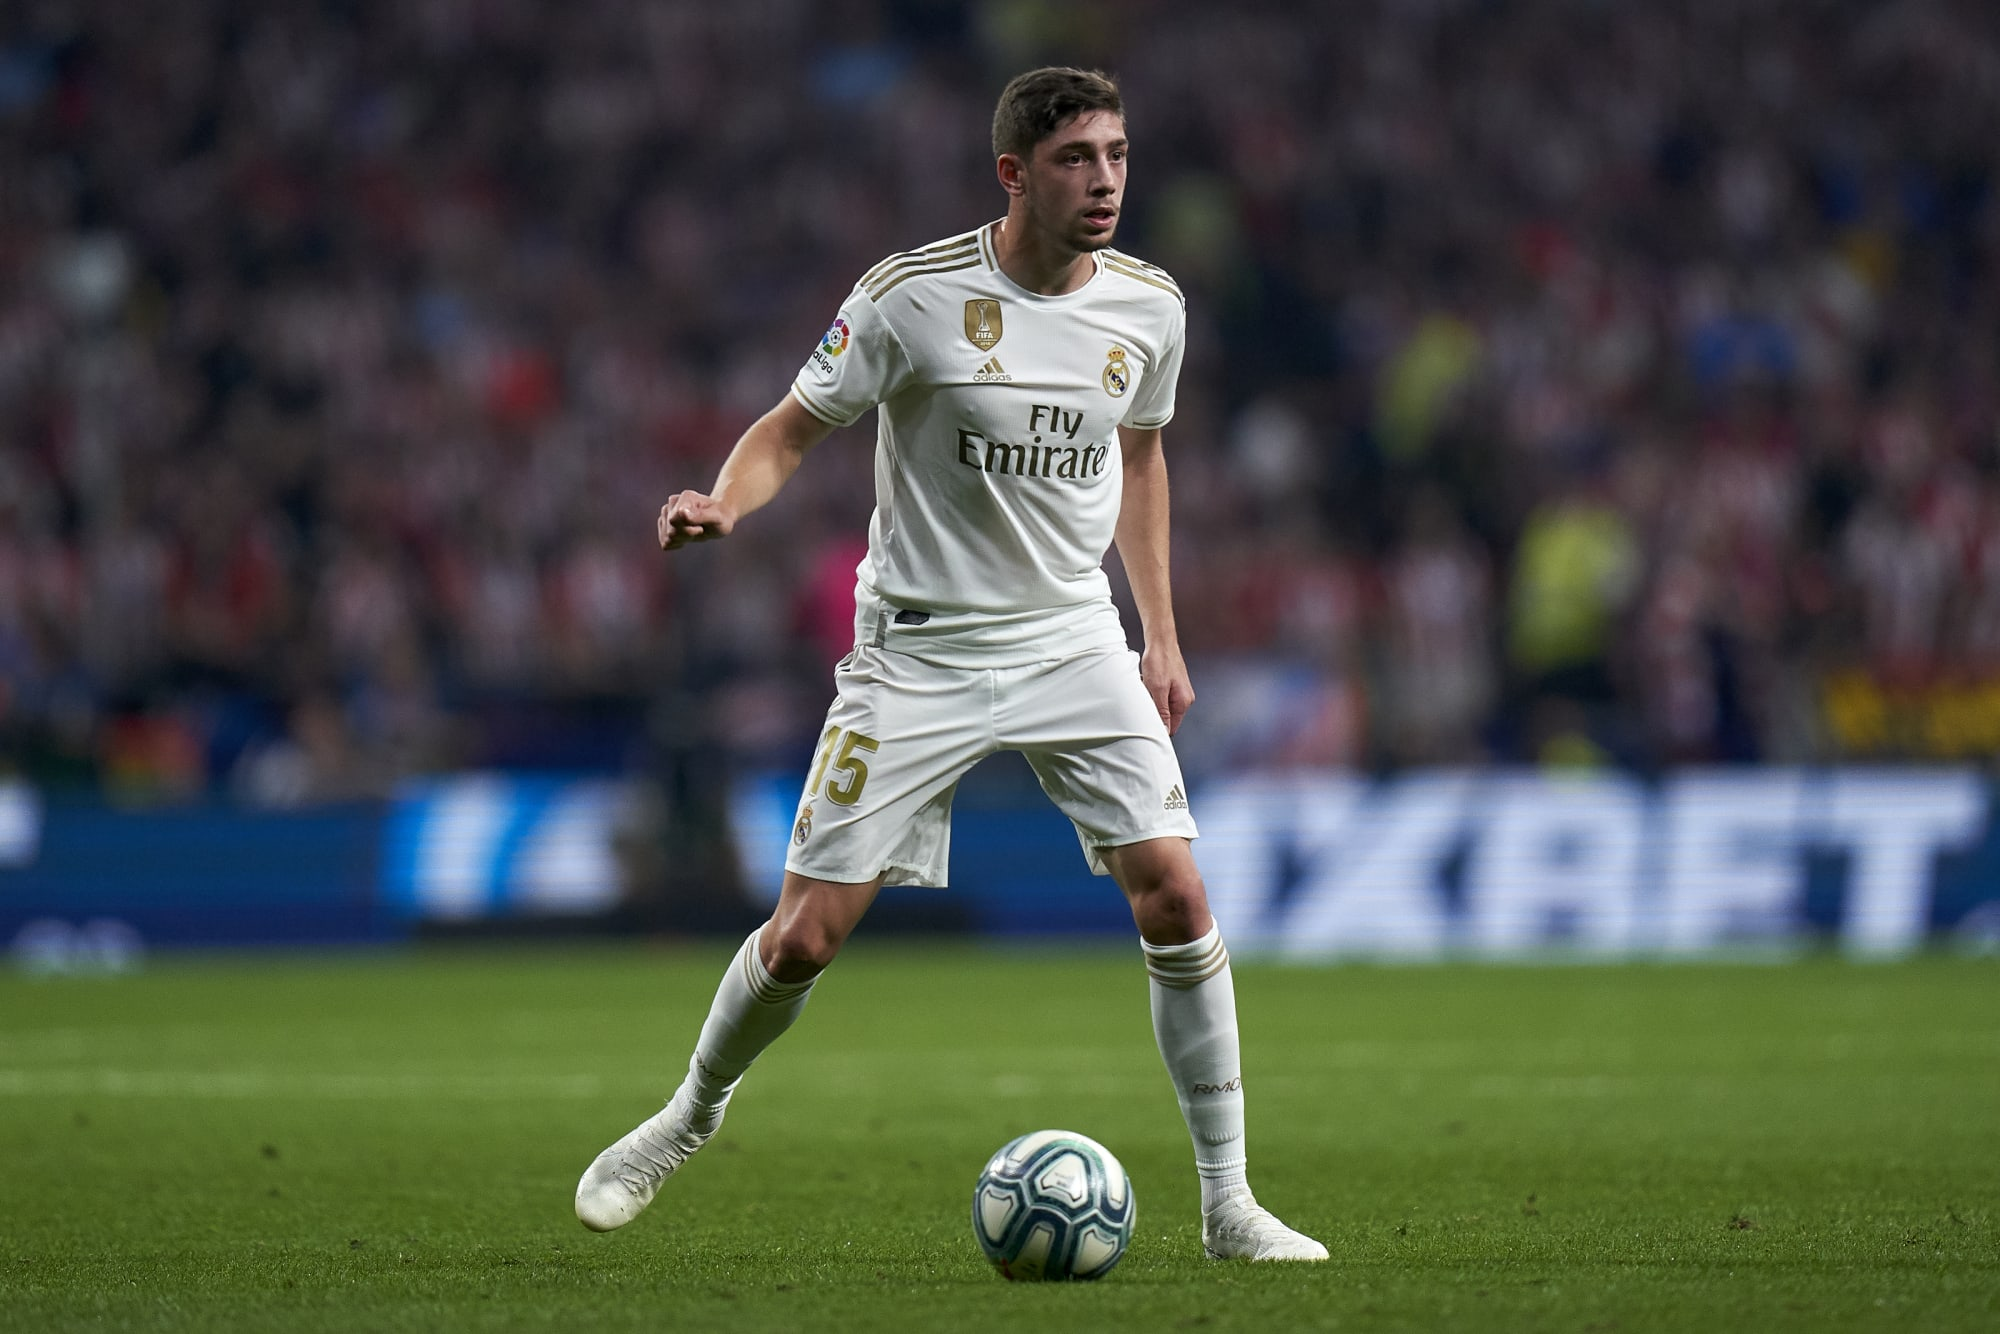 Real Madrid: Why Fede Valverde was the best player vs. Granada